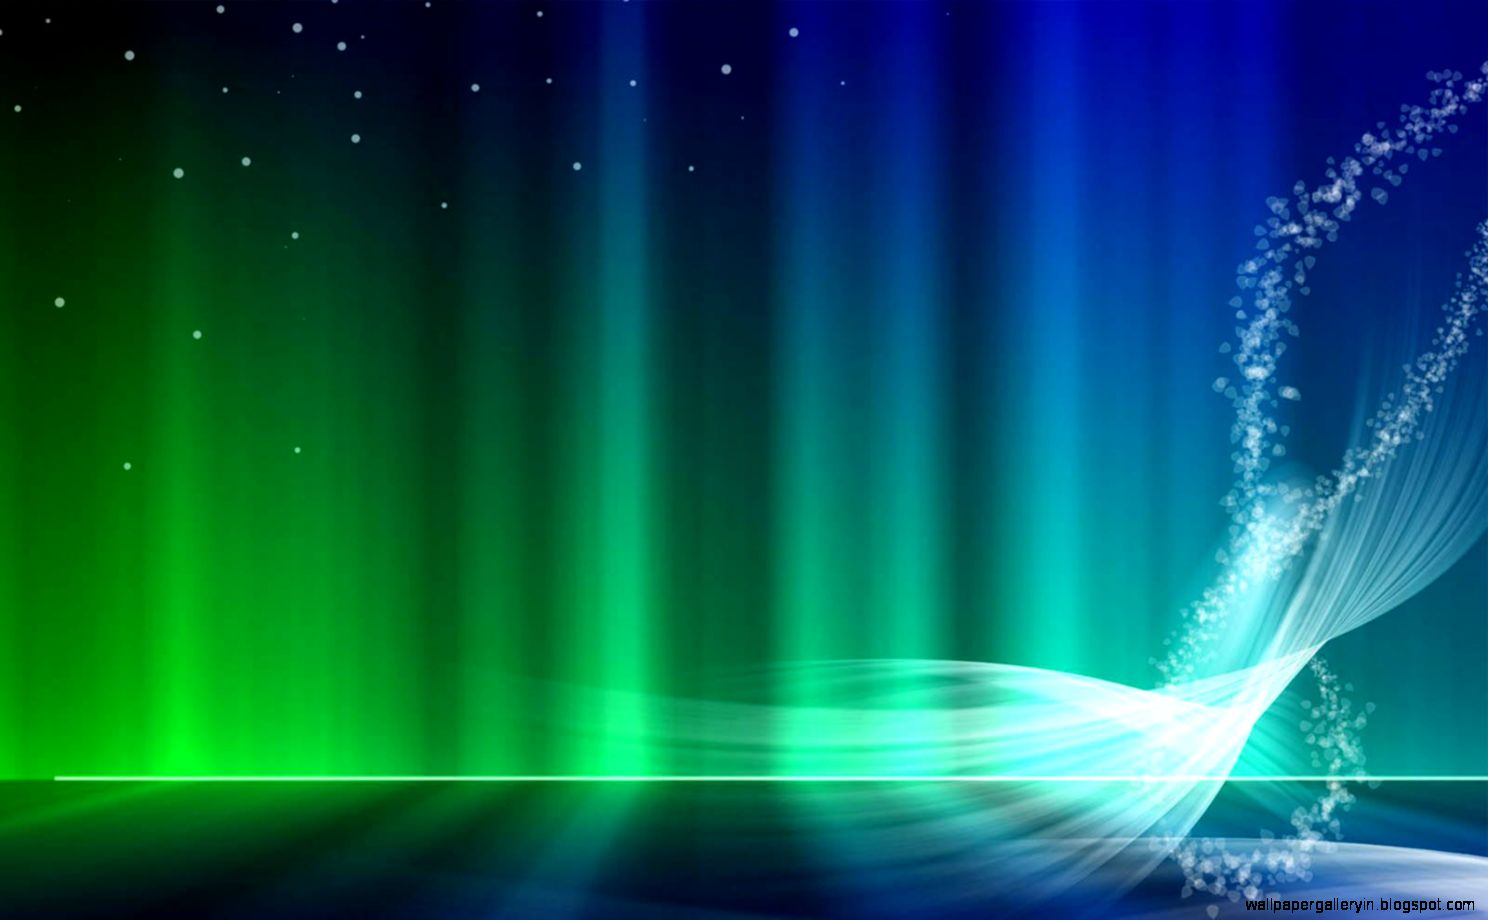 wallpapers Windows 7 Style Wallpapers